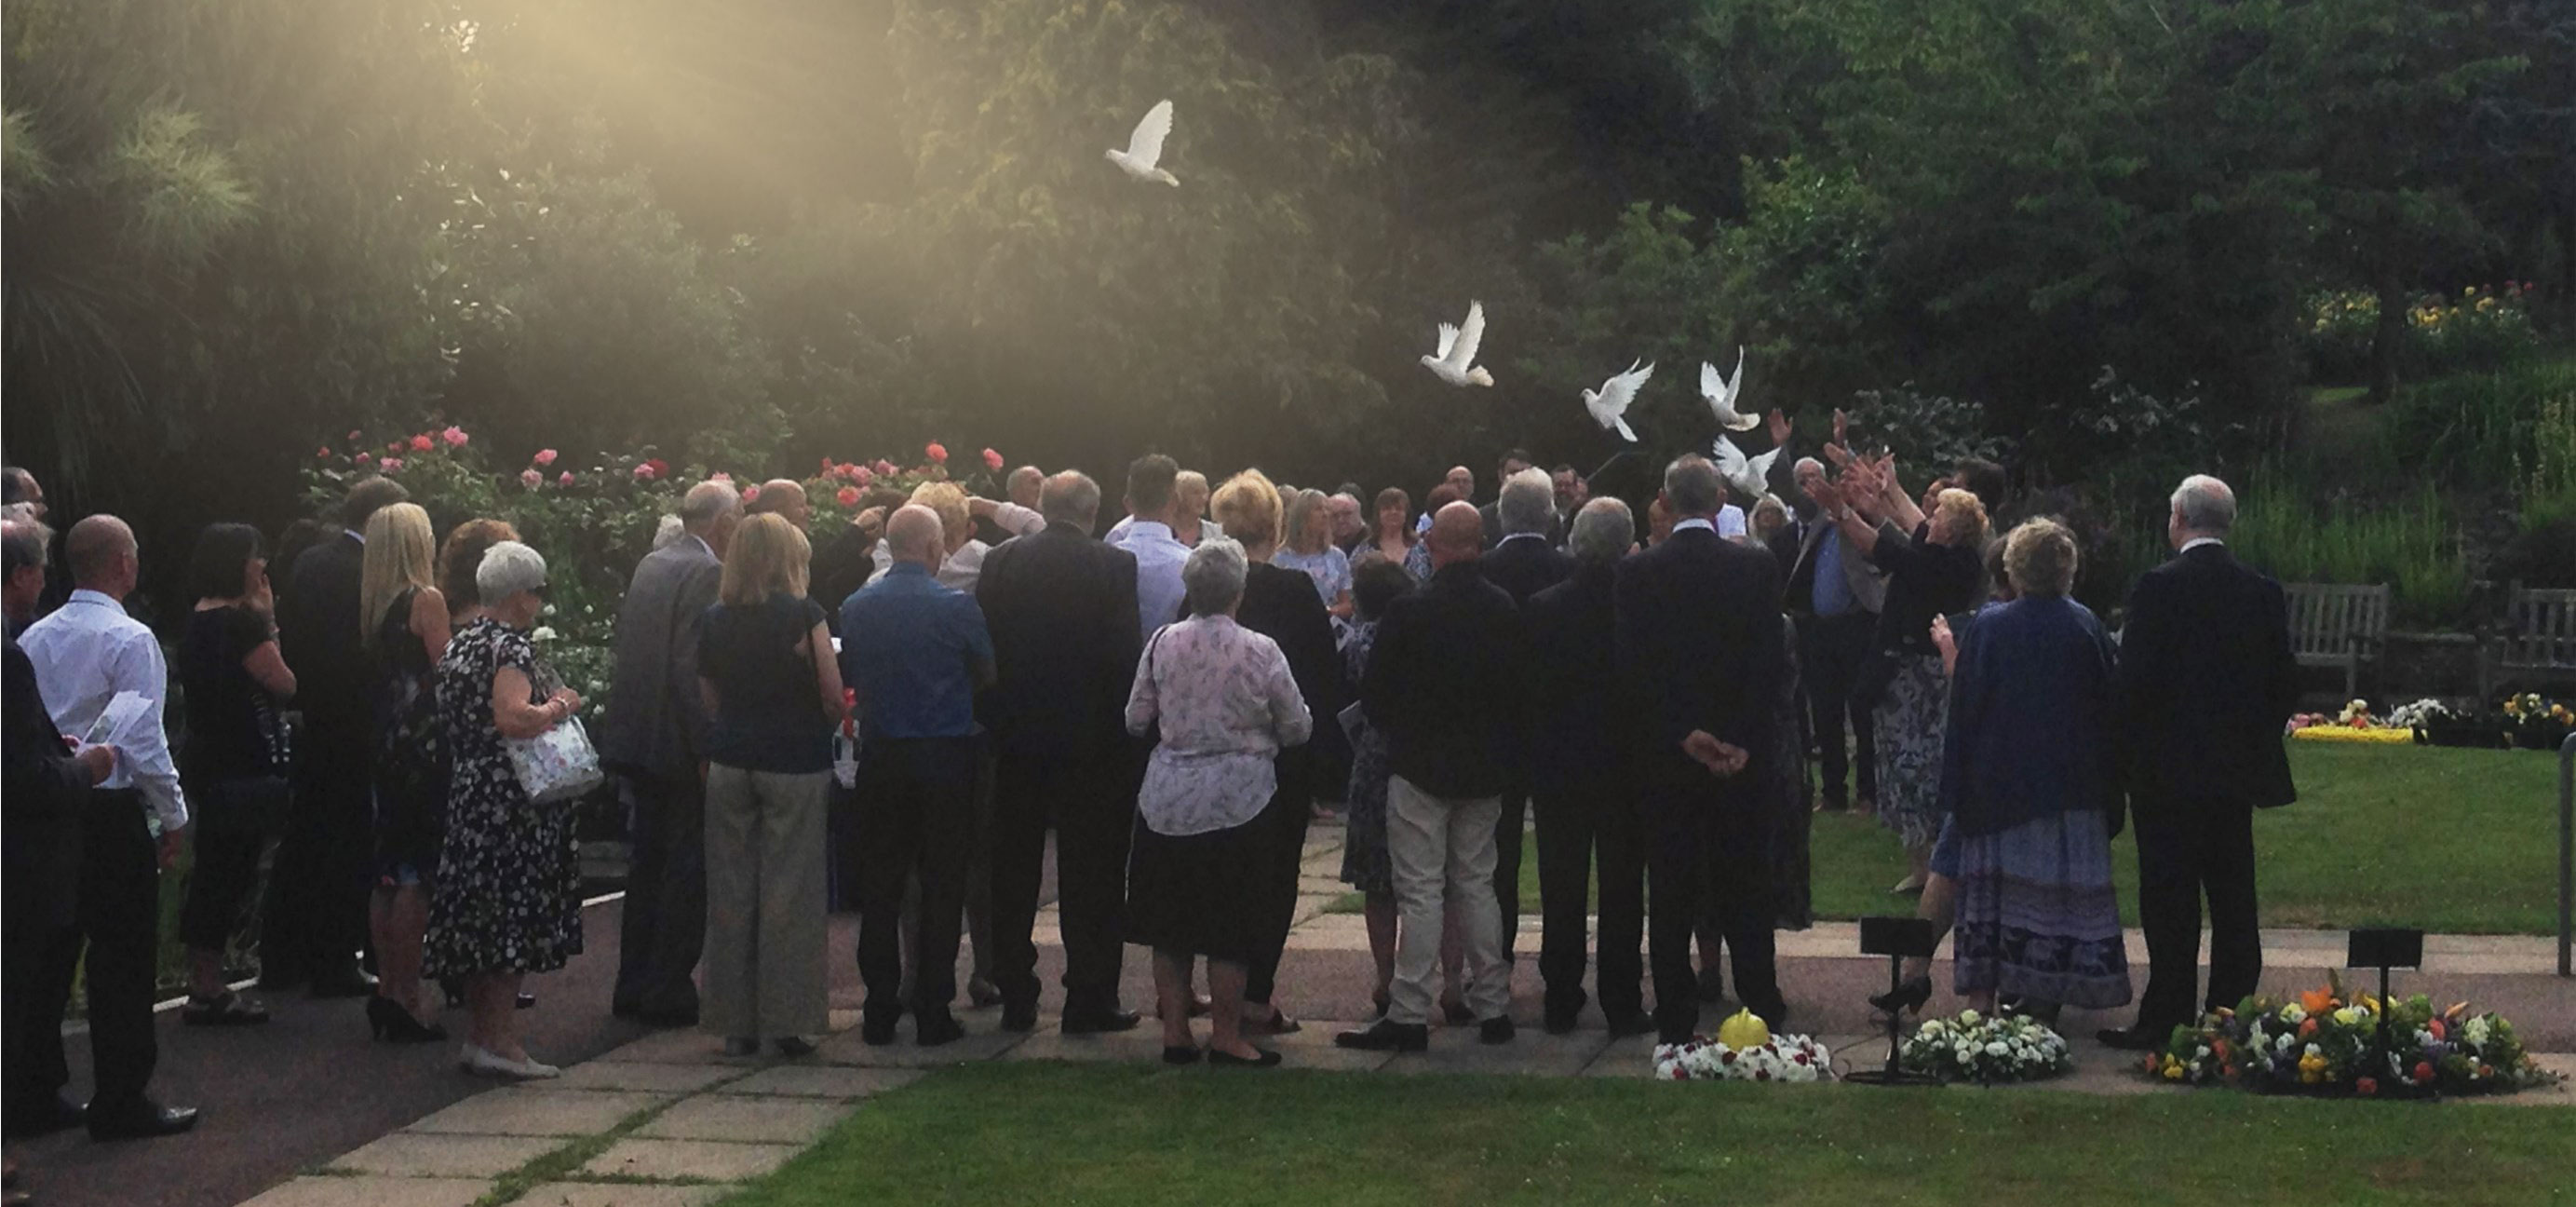 Funeral Service in Hailsham releasing white Doves